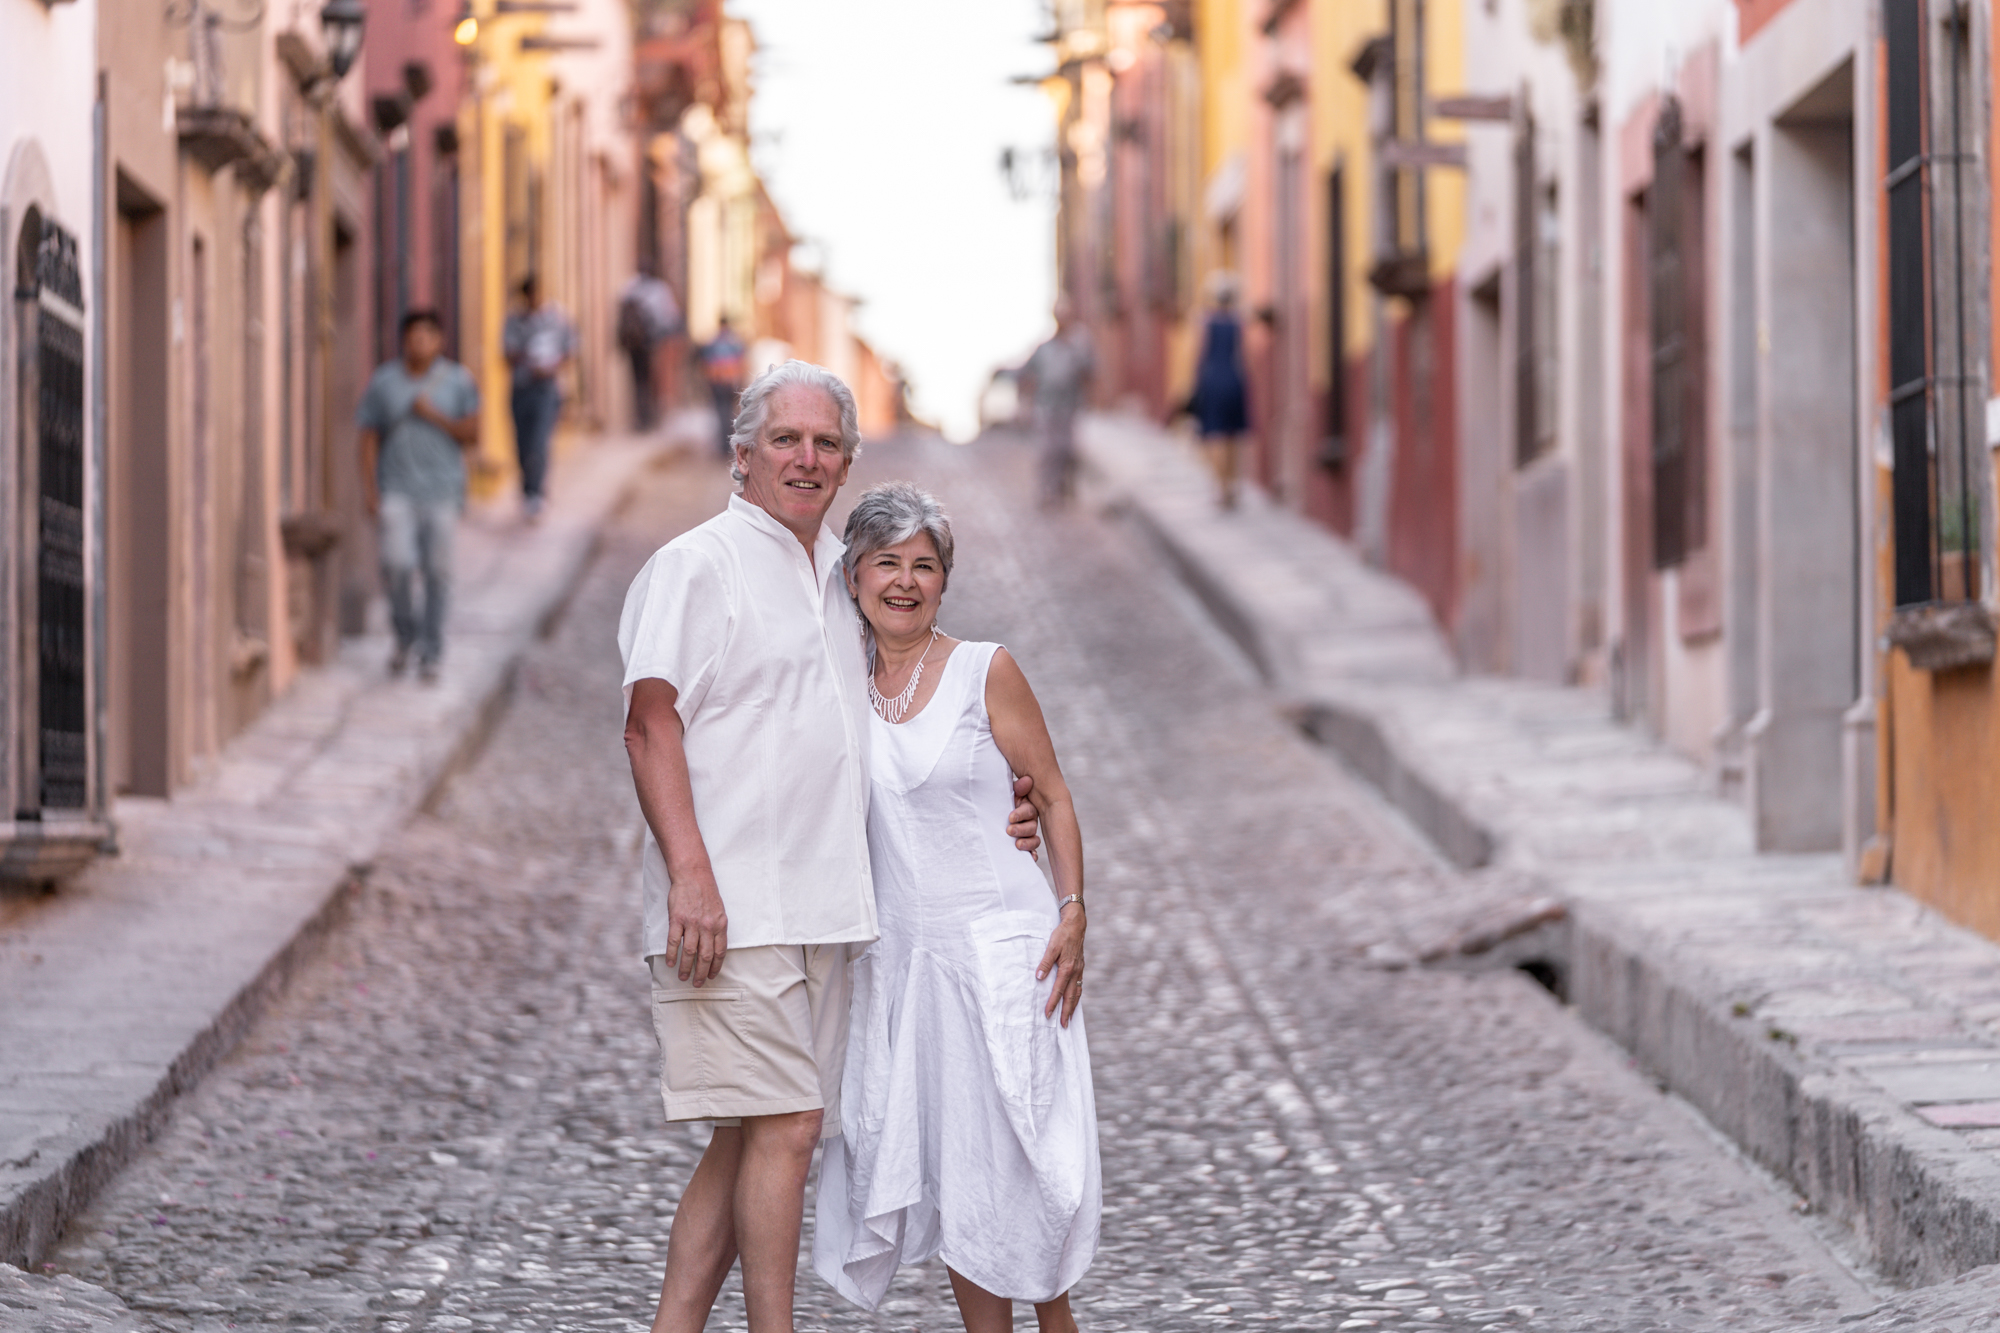 Photoshoot session in San Miguel de Allende with Suzanne and Leo-24.jpg